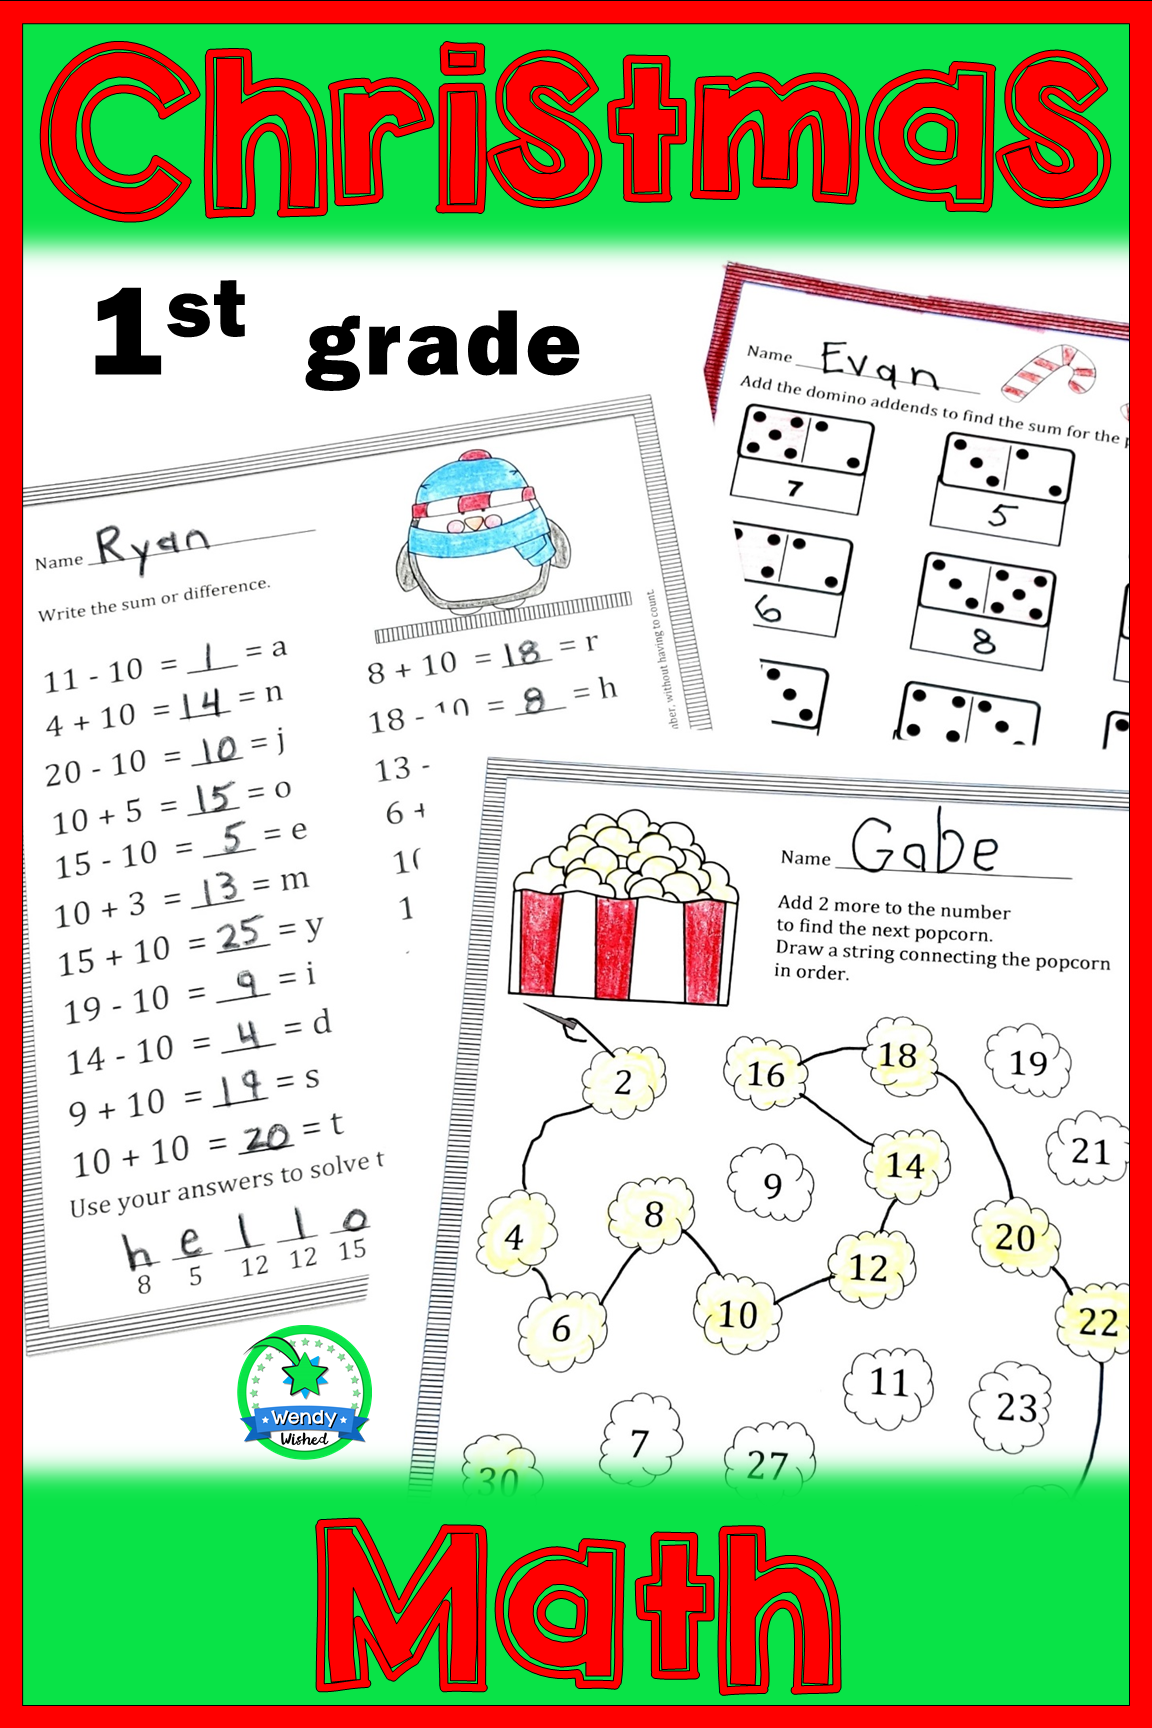 Christmas Math Worksheets For 1st Grade Christmas Math Worksheets Christmas Math Math Worksheets